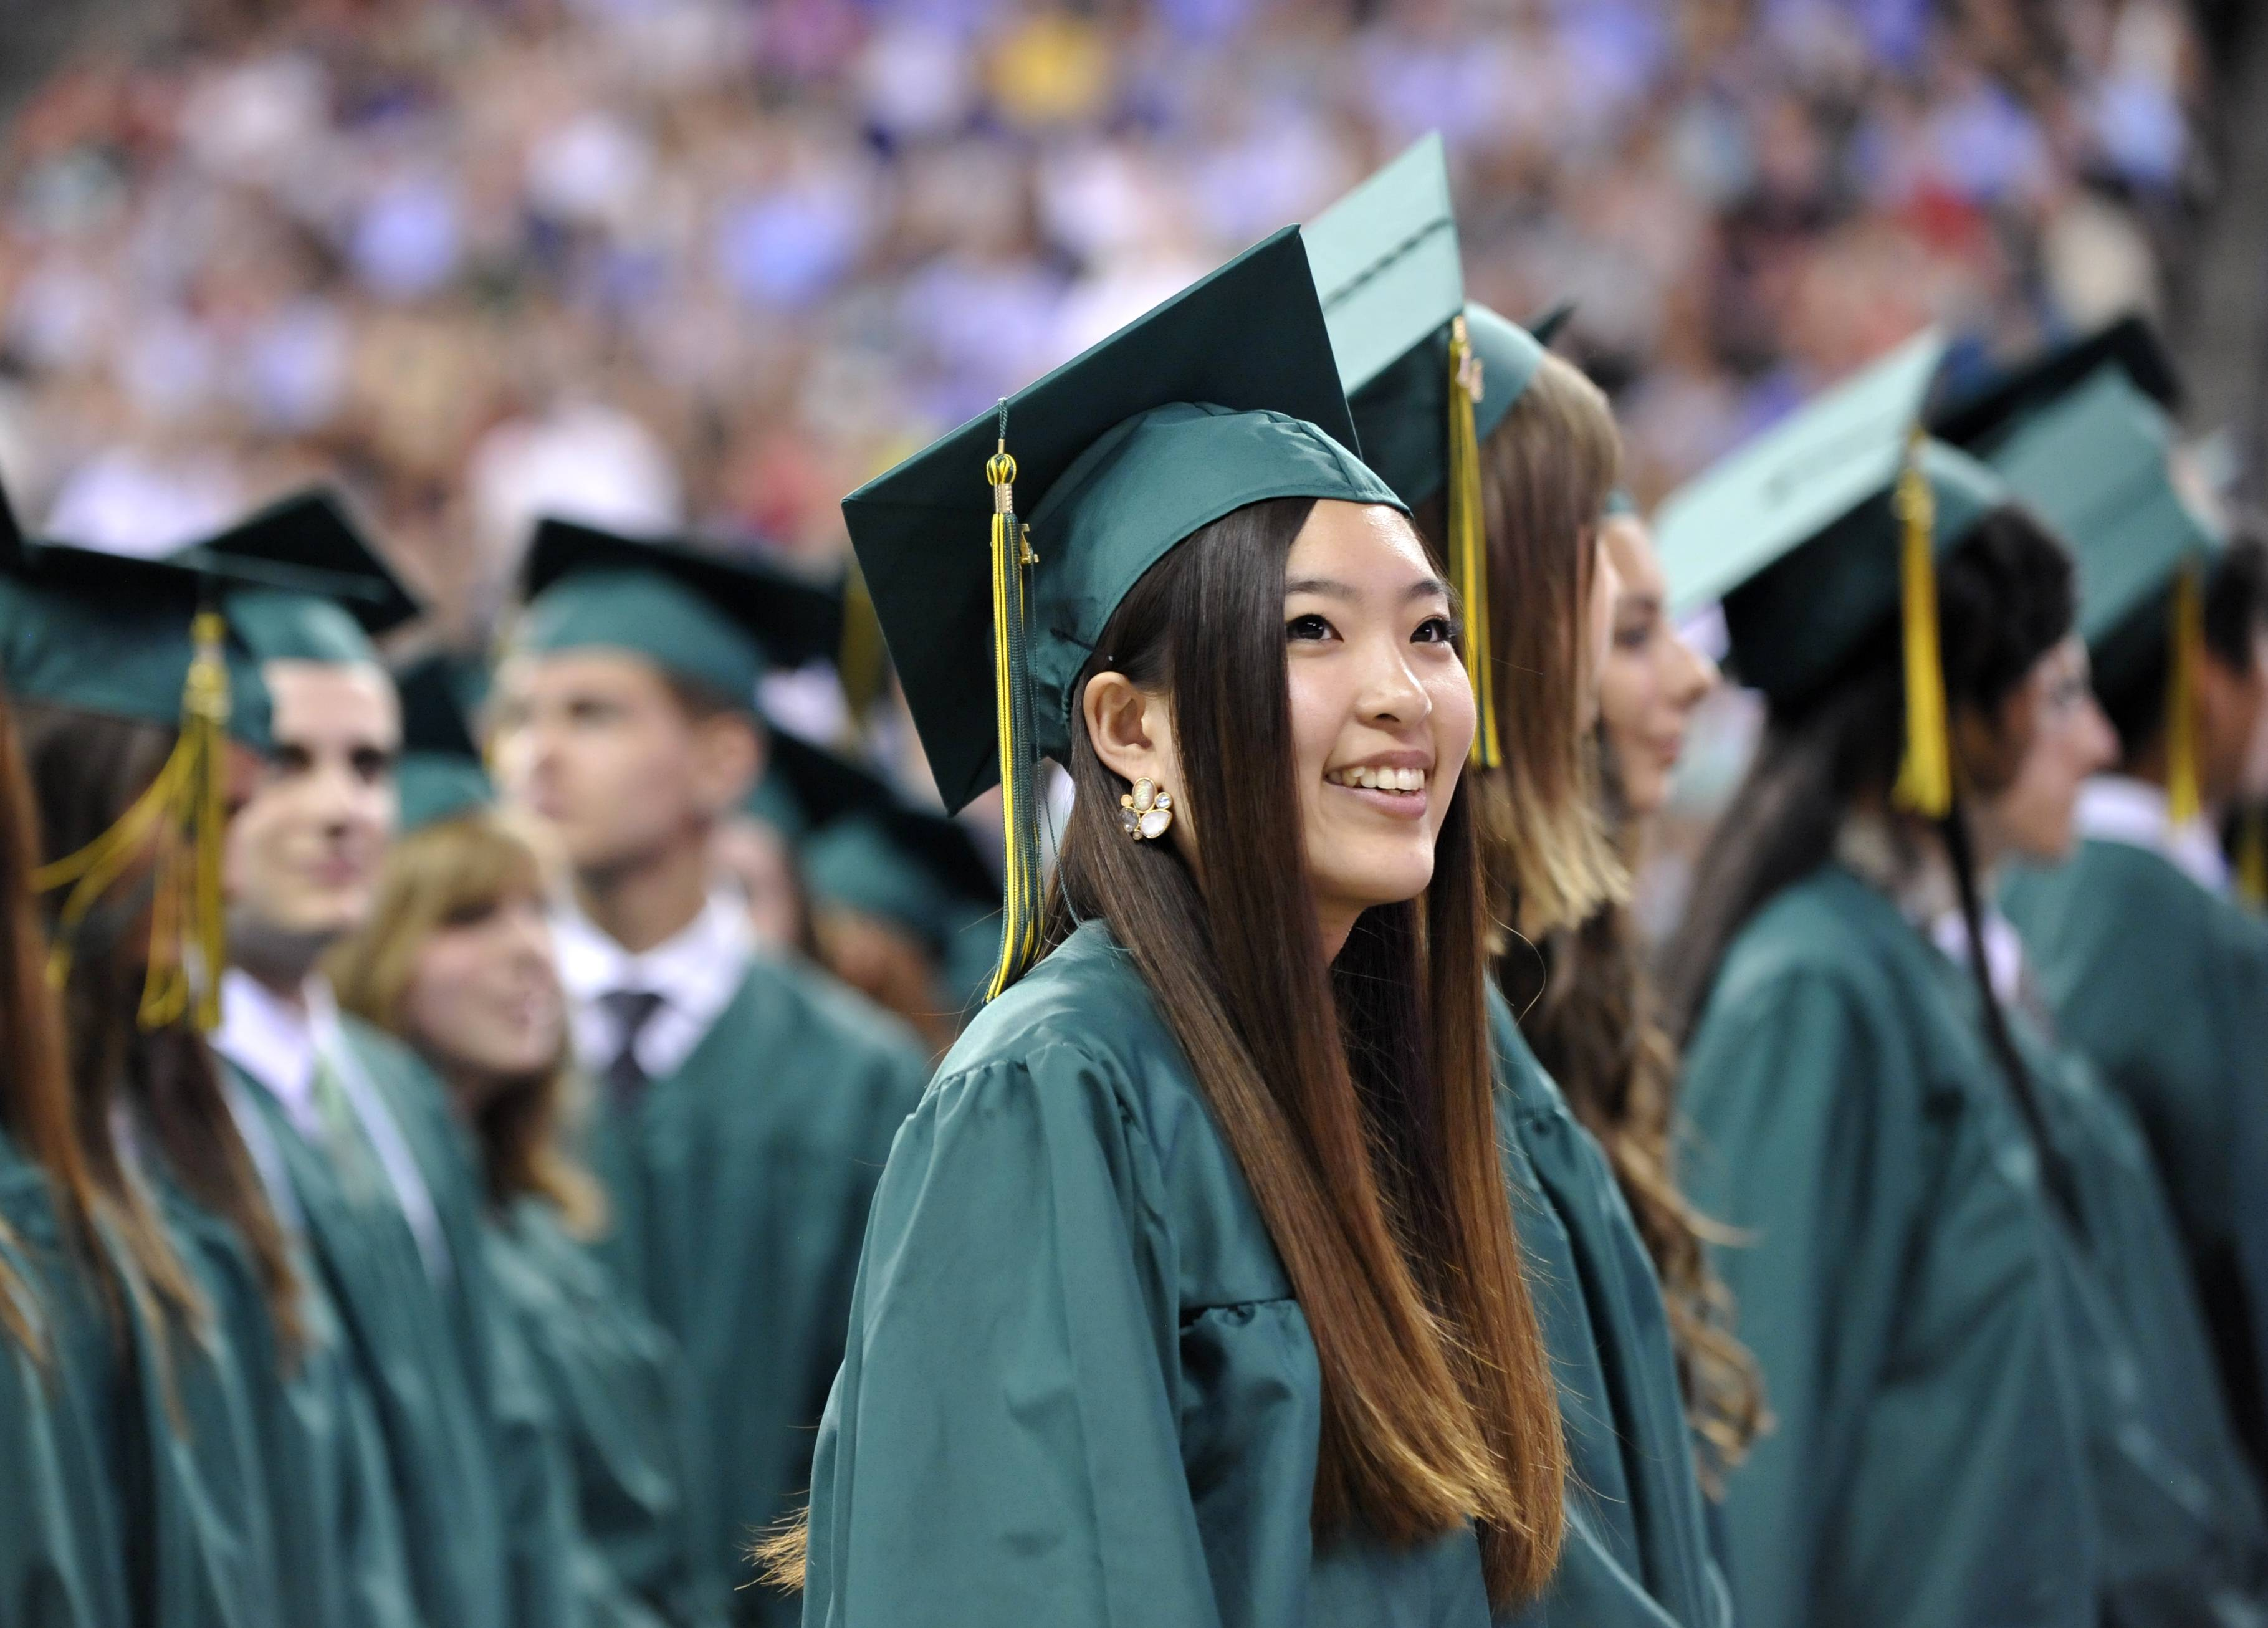 Mio Kurihara of Hoffman Estates glances into the audience at the start of the William Fremd High School commencement at Sears Centre in Hoffman Estates on Sunday, June 1.